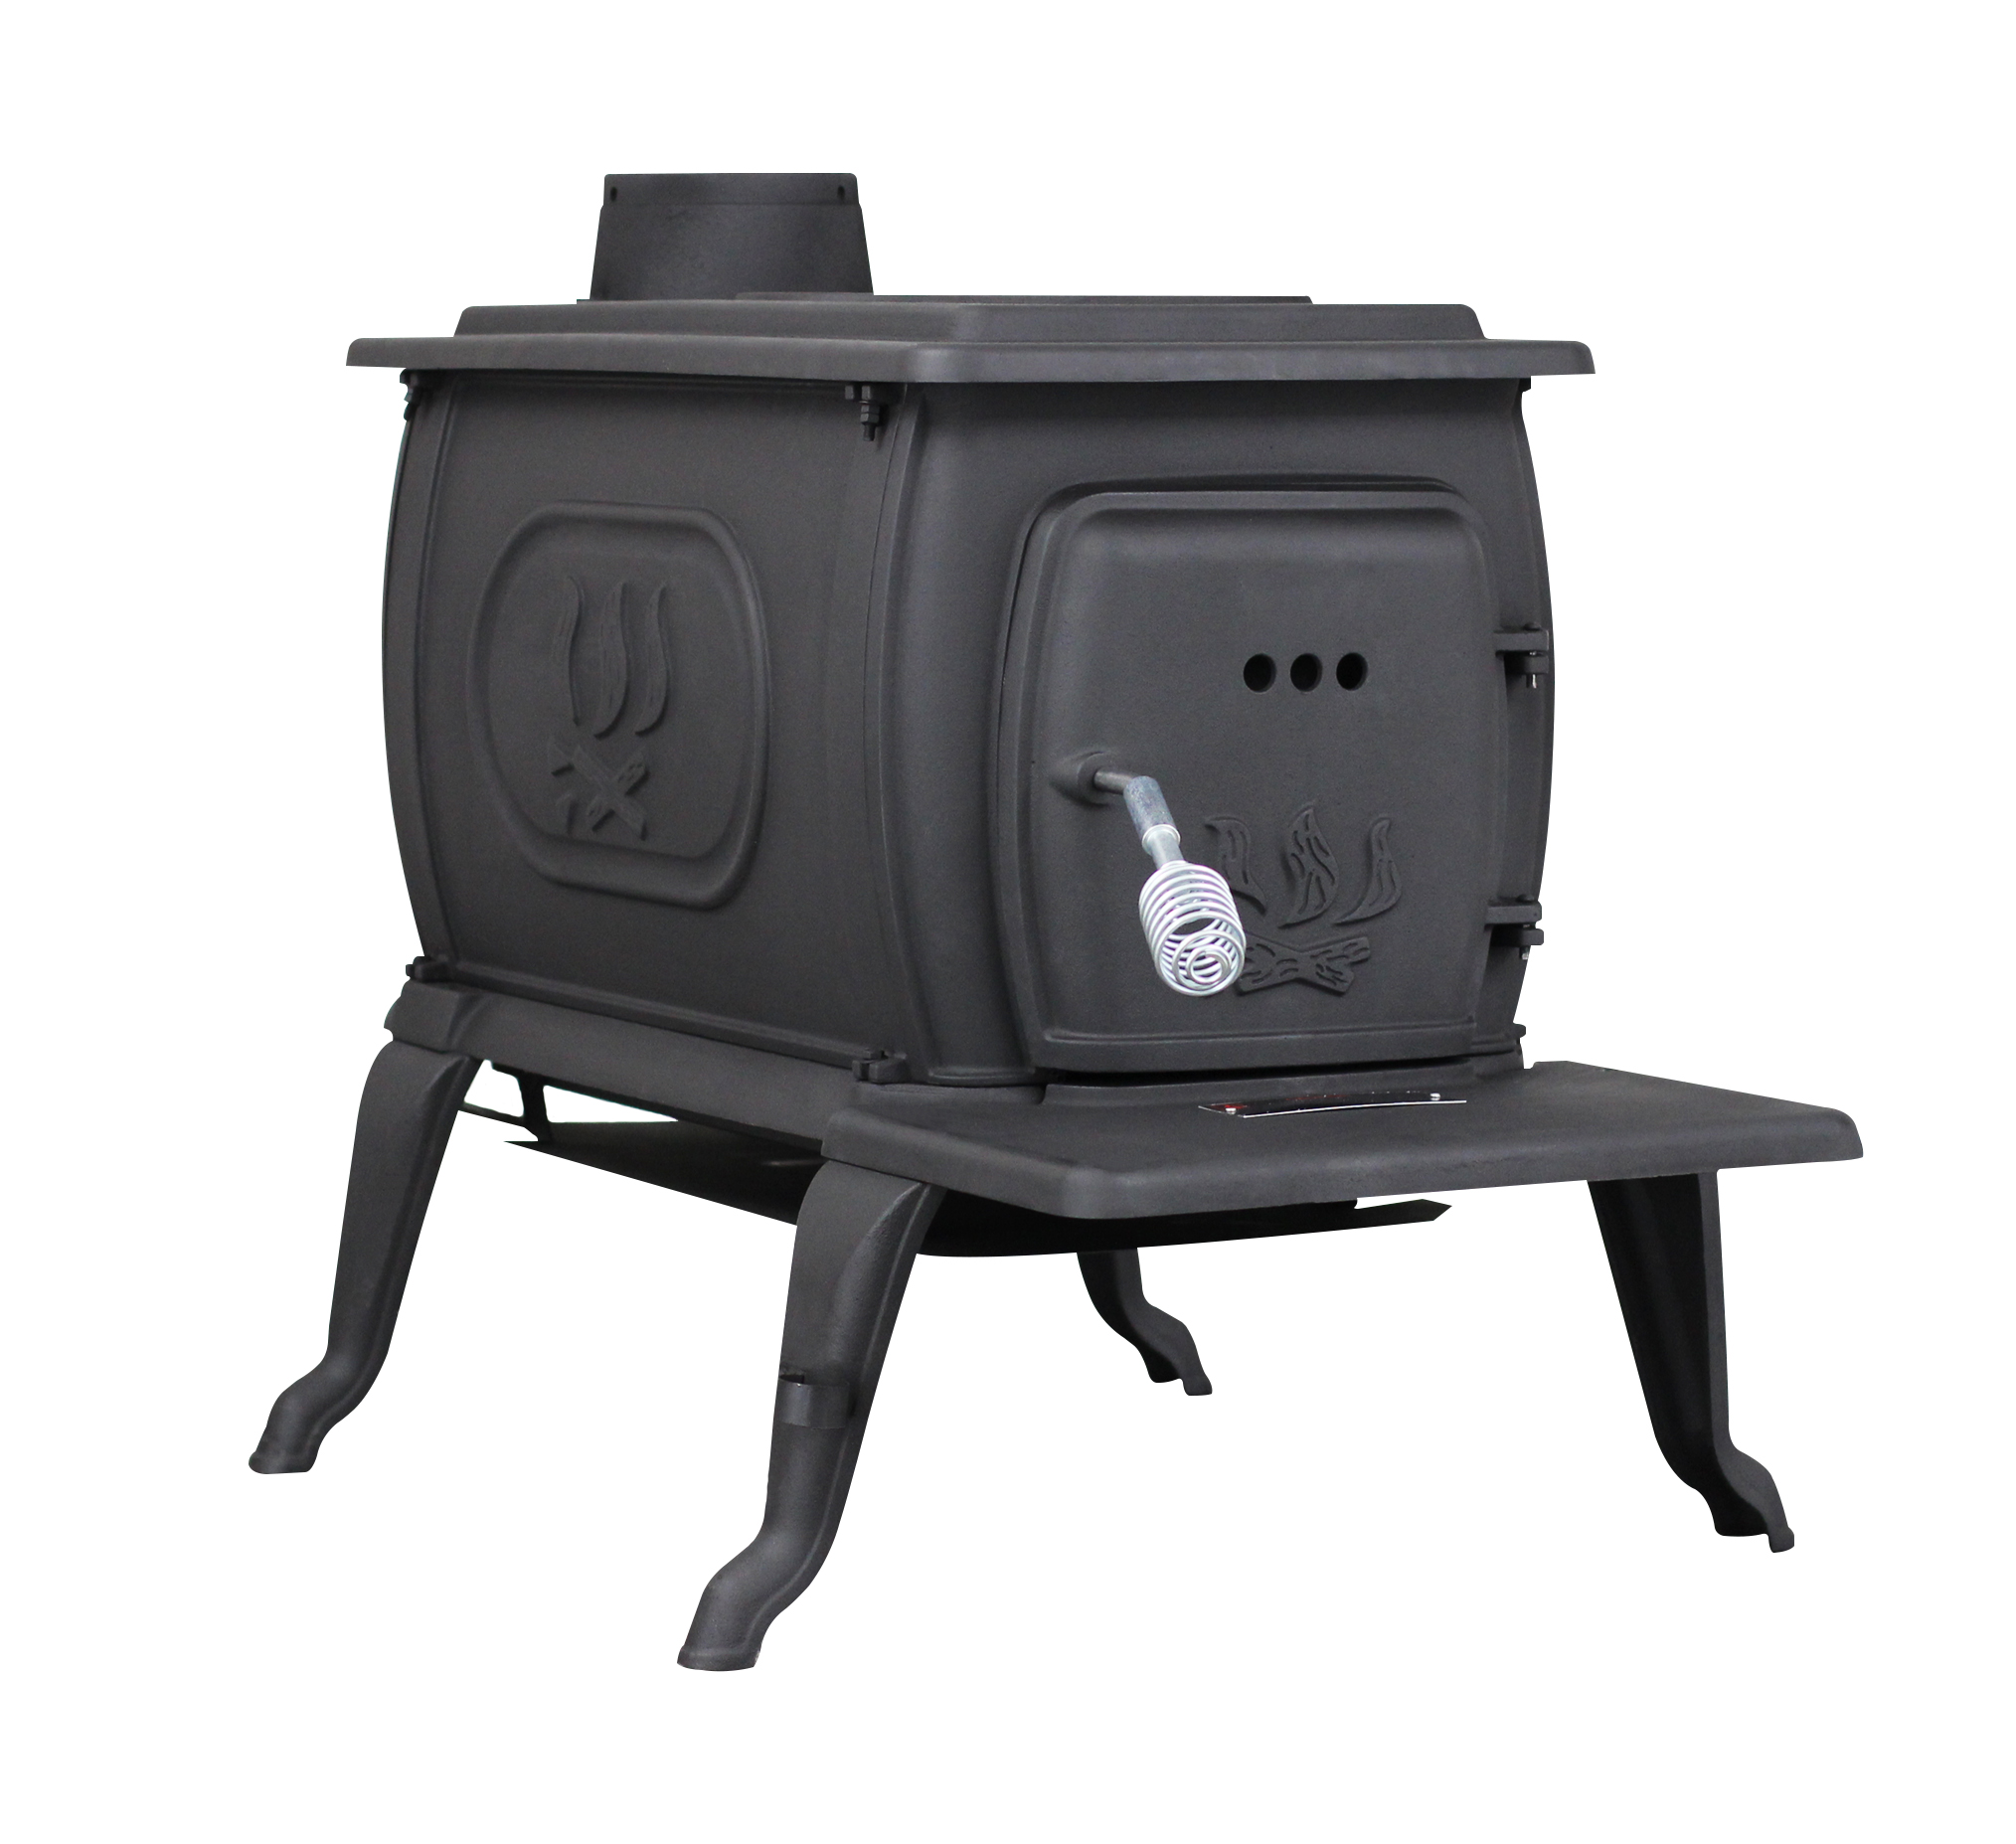 94,000 BTU EPA Certified Cast Iron Logwood Stove, Large by United States Stove Company